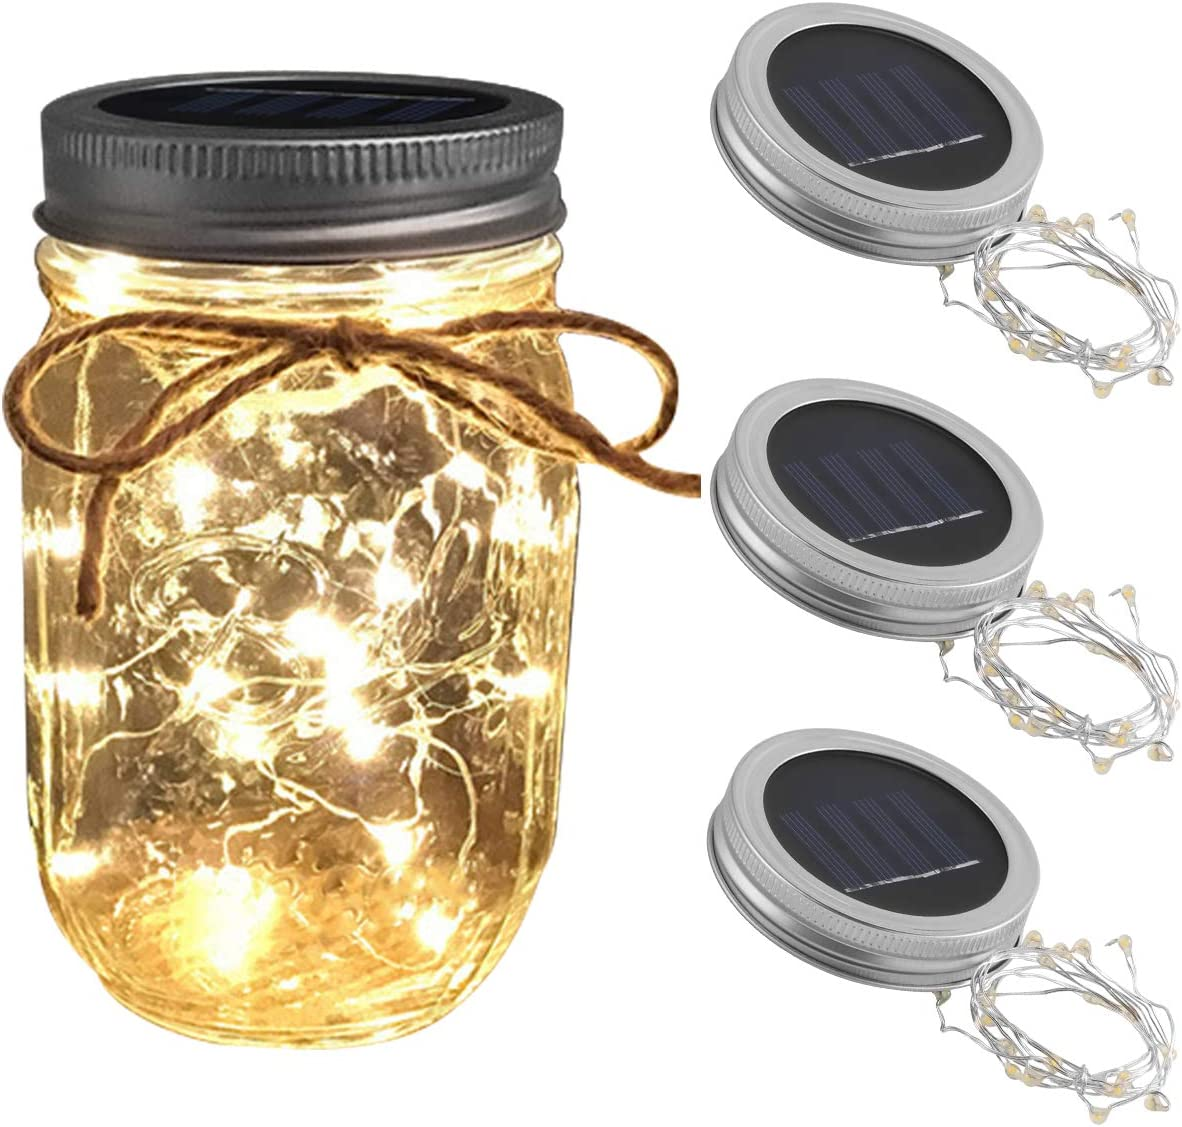 Solar Mason Jar Lights, 3 Pack 20 LEDs Hanging Solar Lanterns Garden Decor Outdoor Lights, Waterproof String Fairy Star Firefly Jar Lids Lights for Patio Wedding Christmas Party Warm White